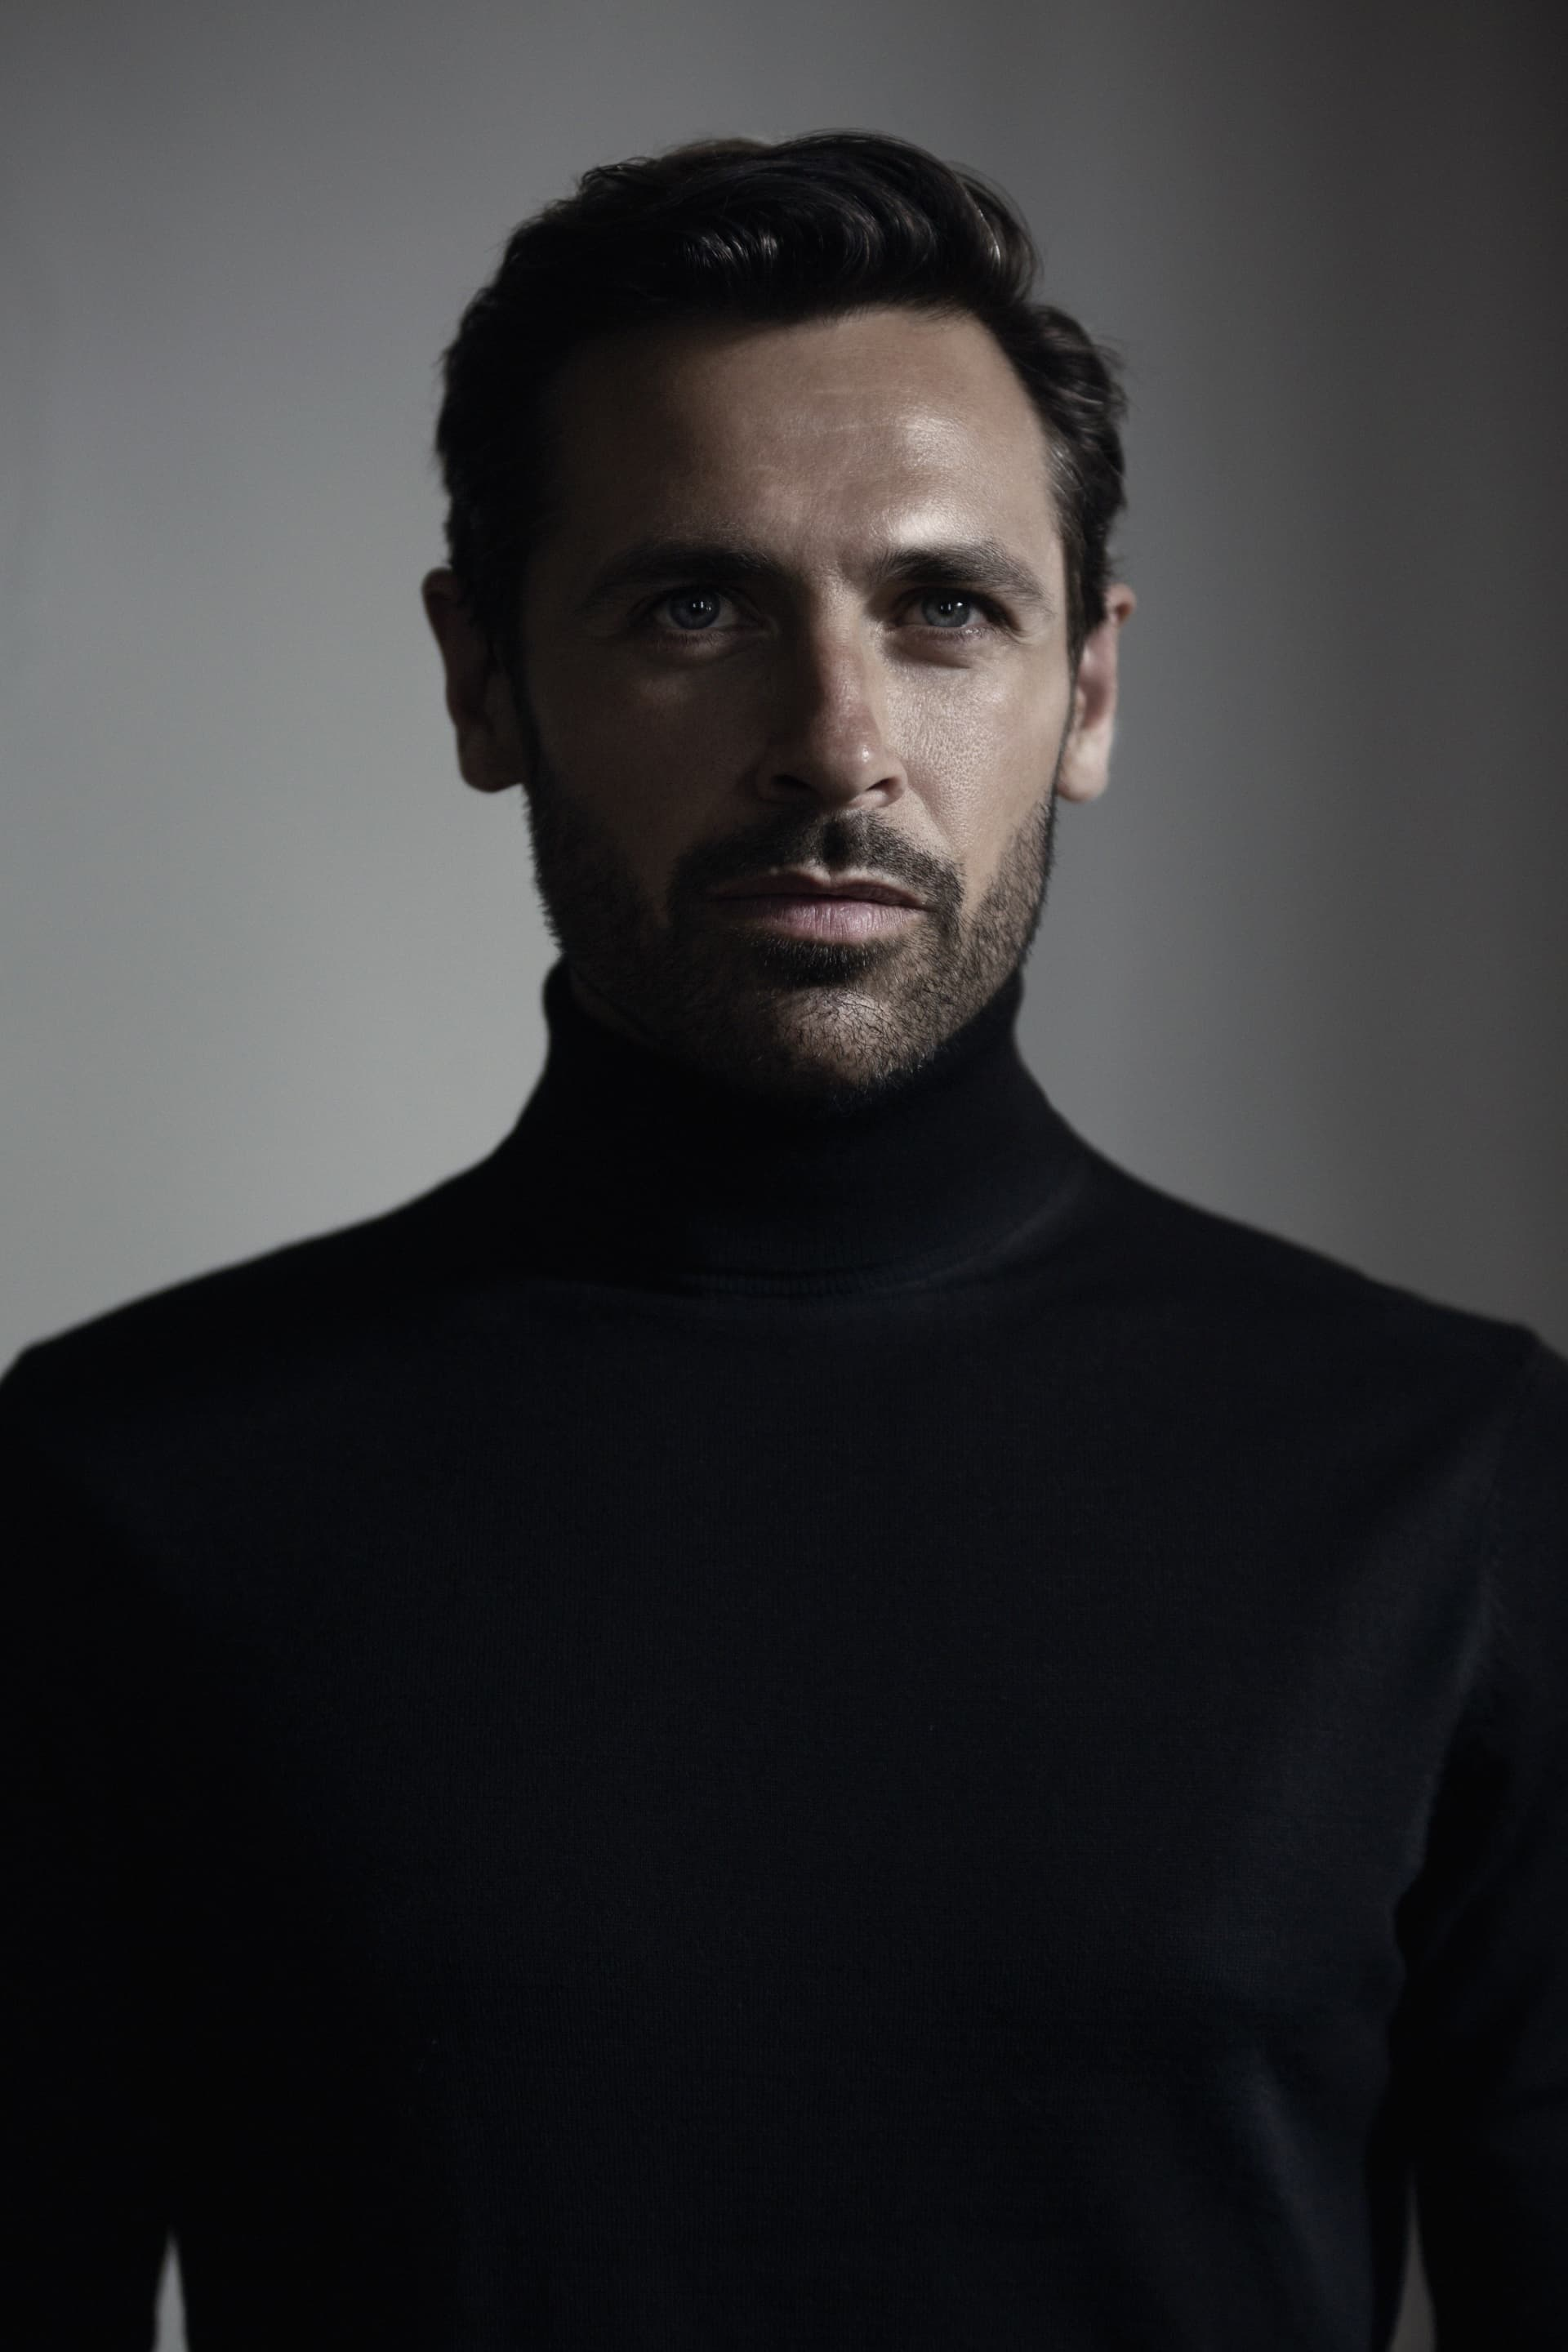 Turtle-neck, model'sown. Watch, Fossil.